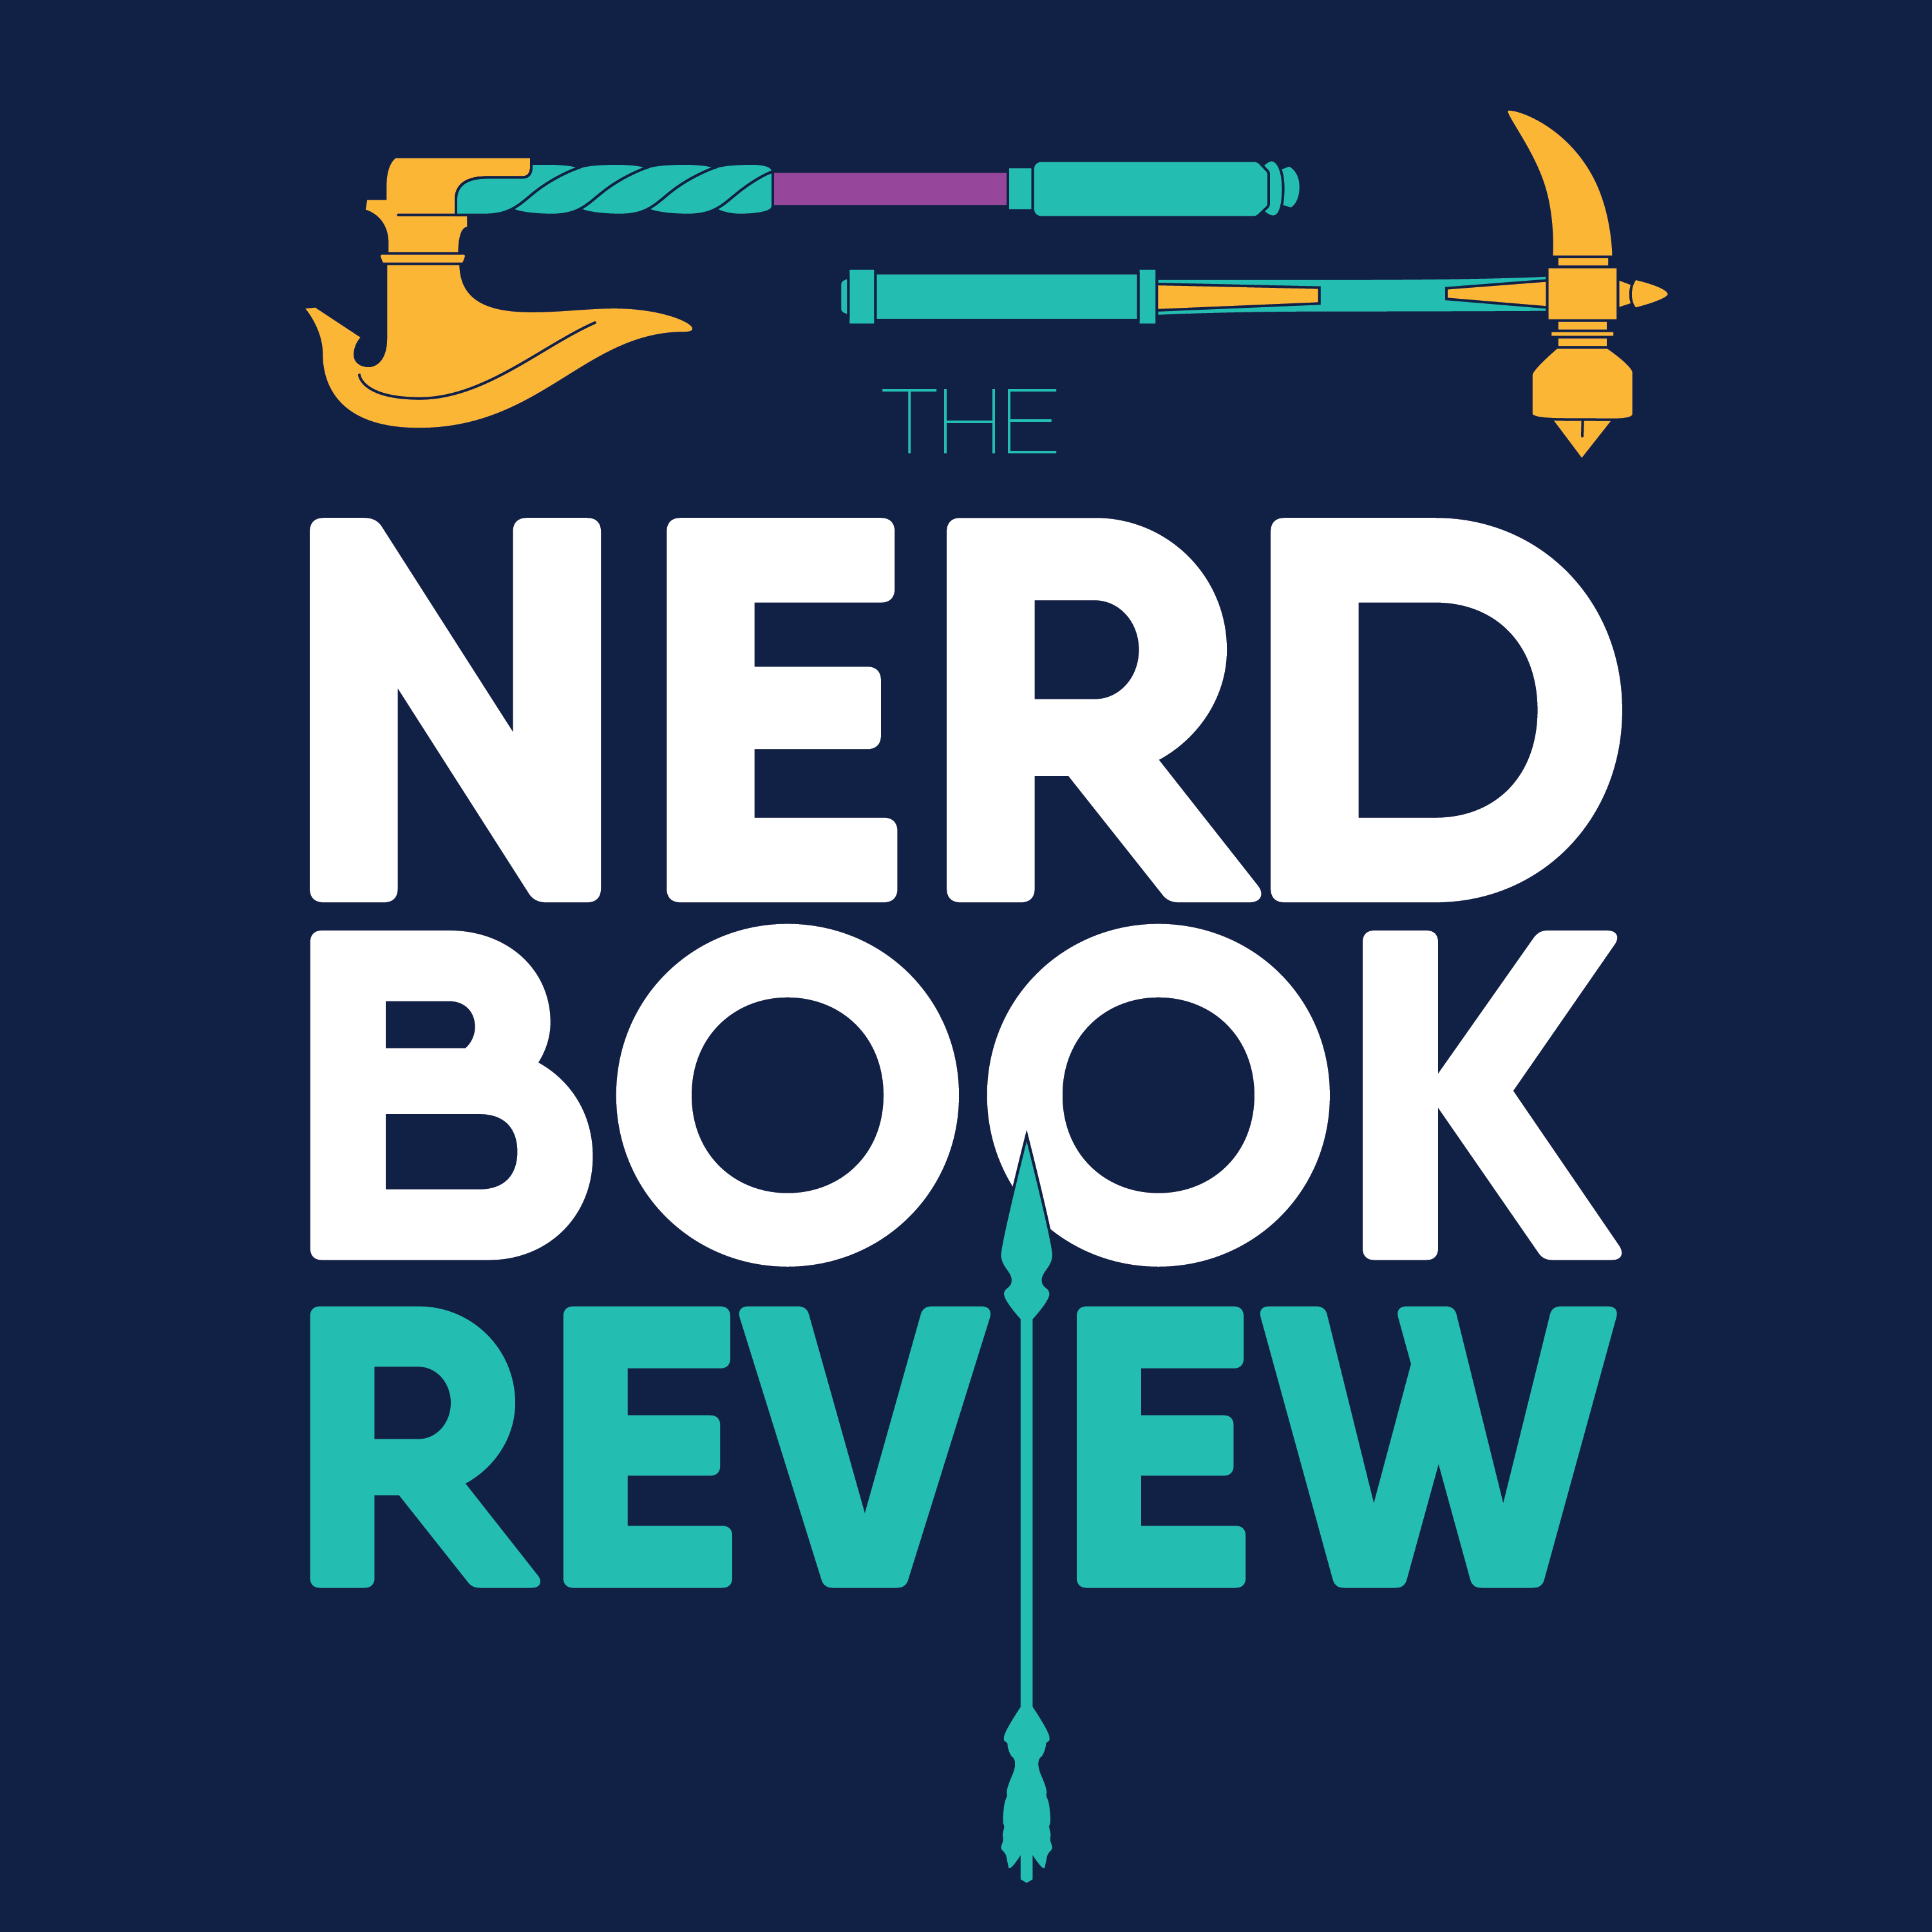 The Nerd Book Review